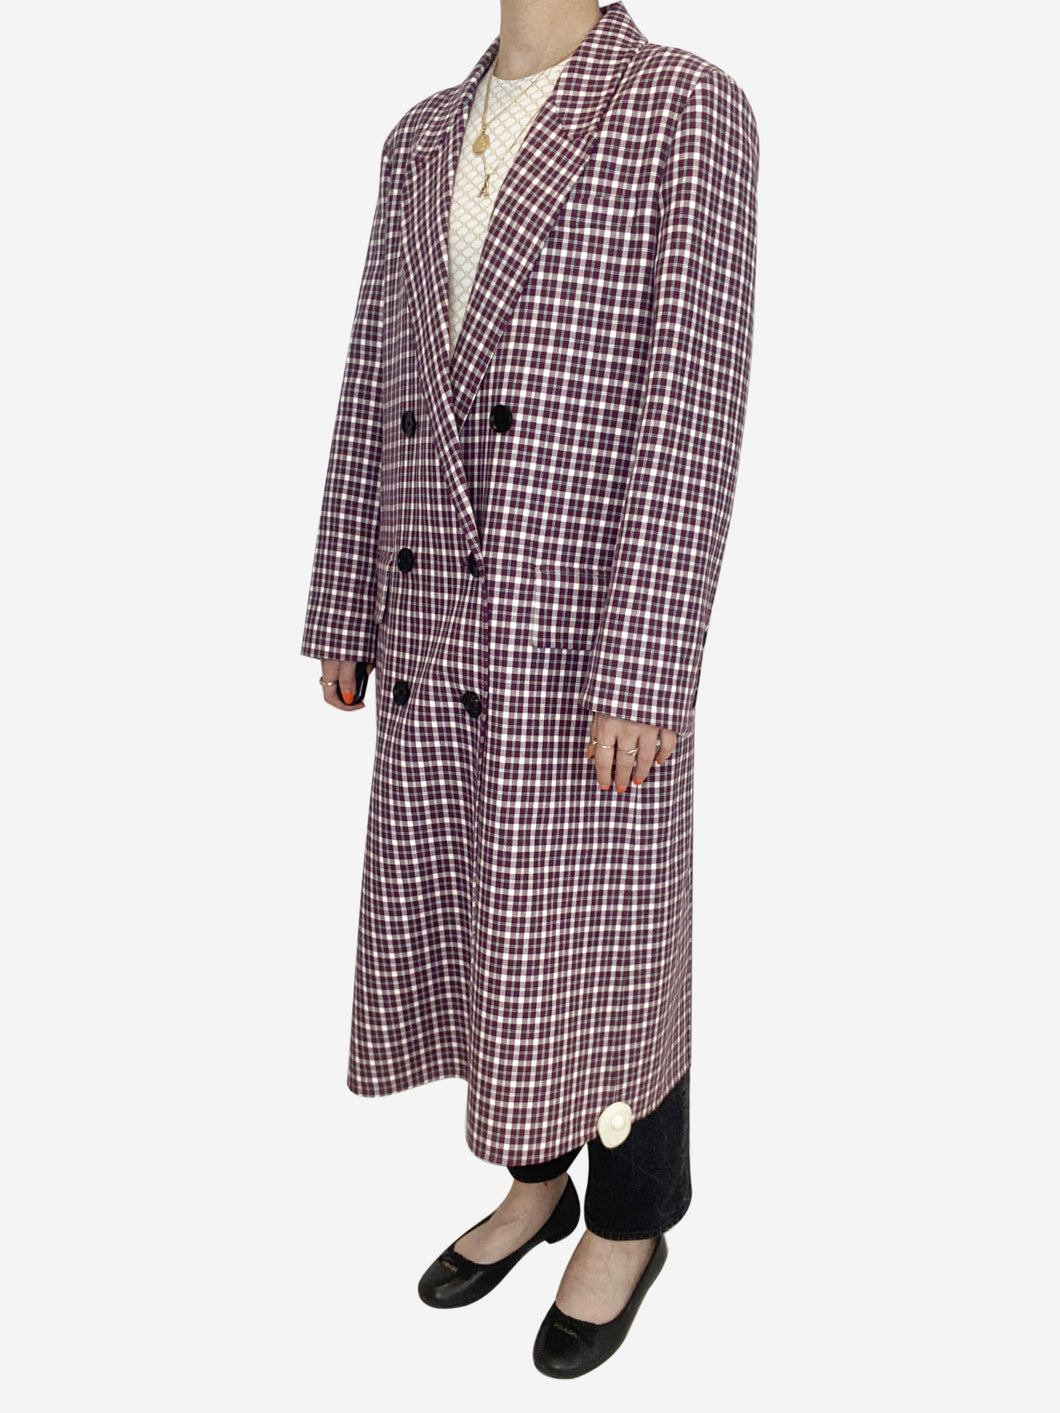 Purple & White Burberry Coats, 10